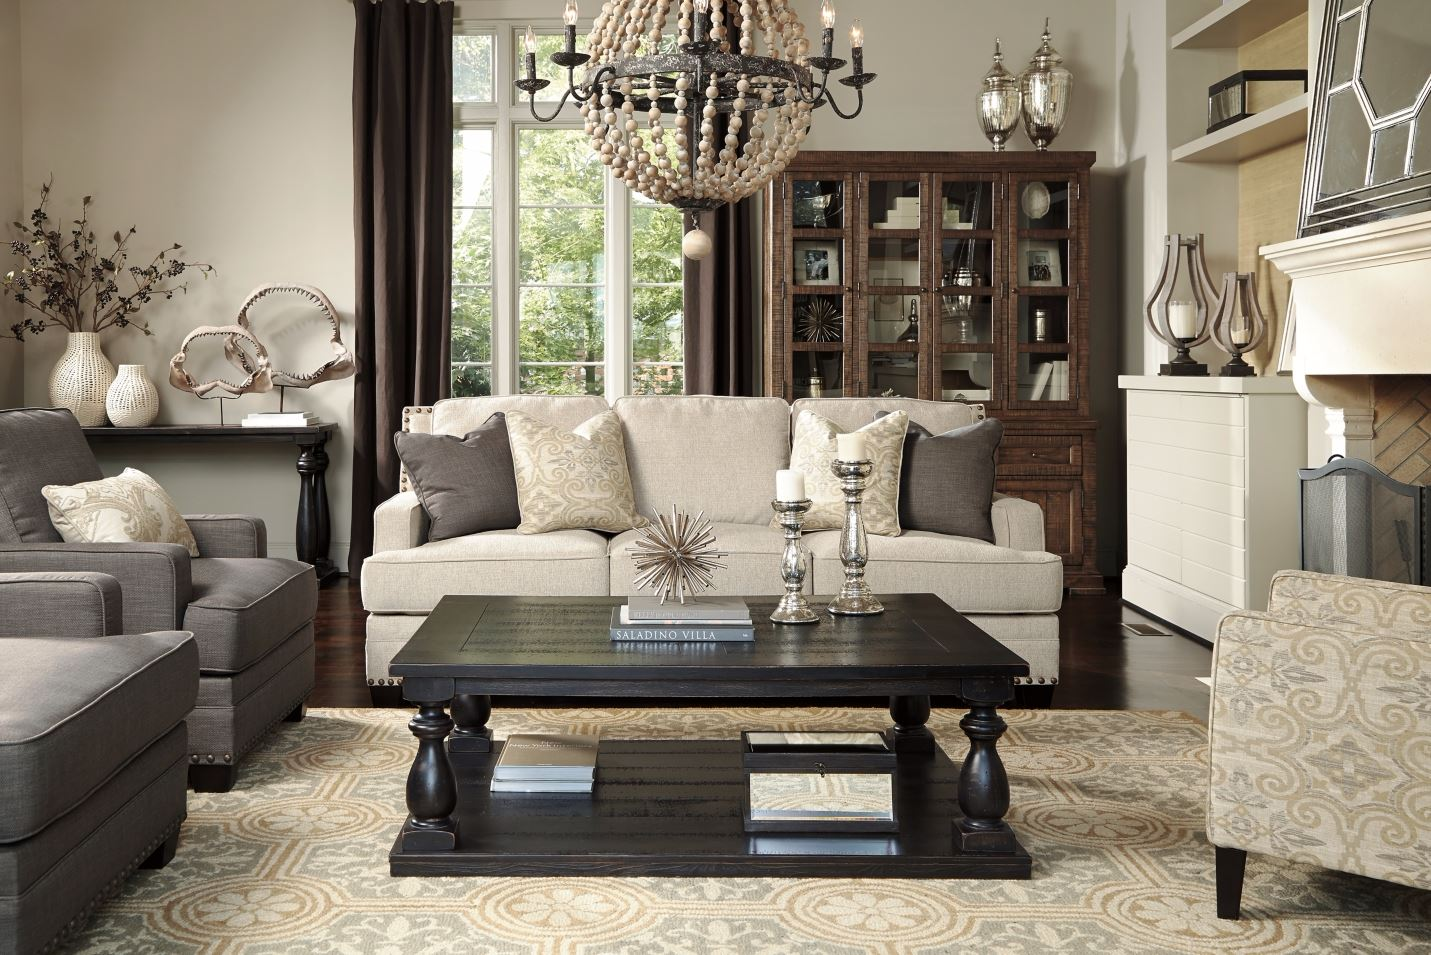 The New Urban Farmhouse Chic Ashley Furniture Homestore